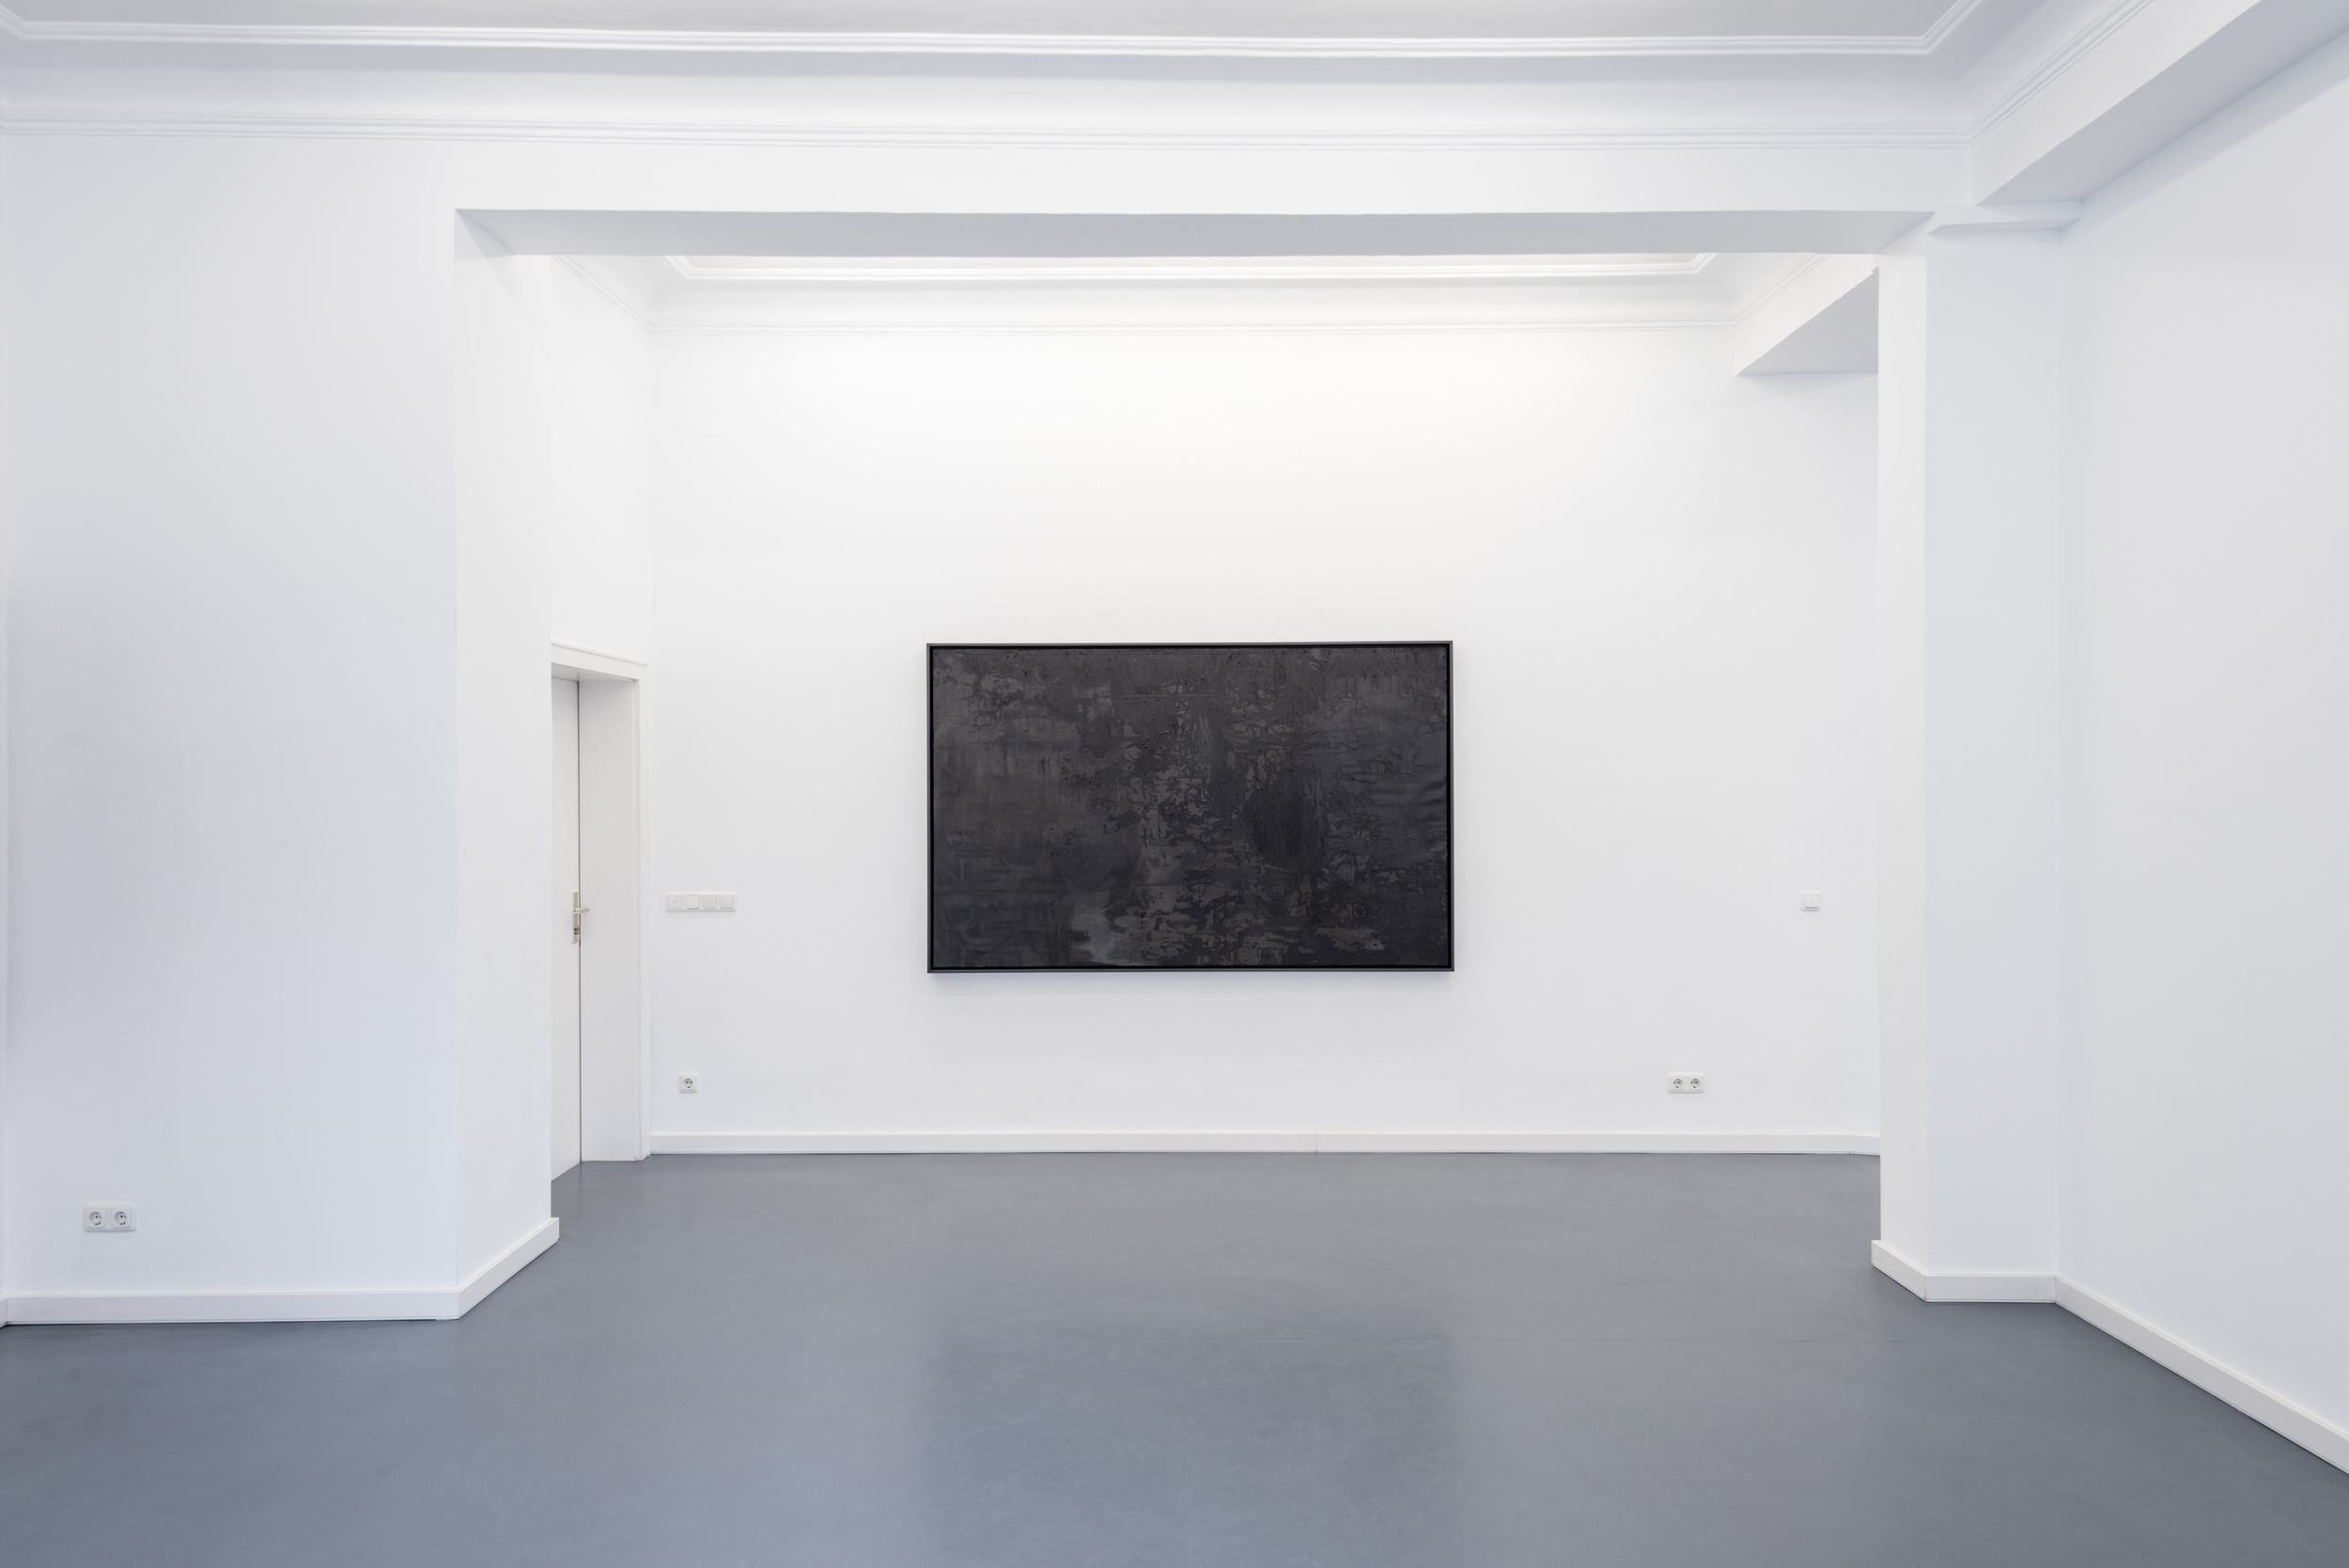 Monochrome,  Andres Binder Gallery, Munich, Germany, 2016